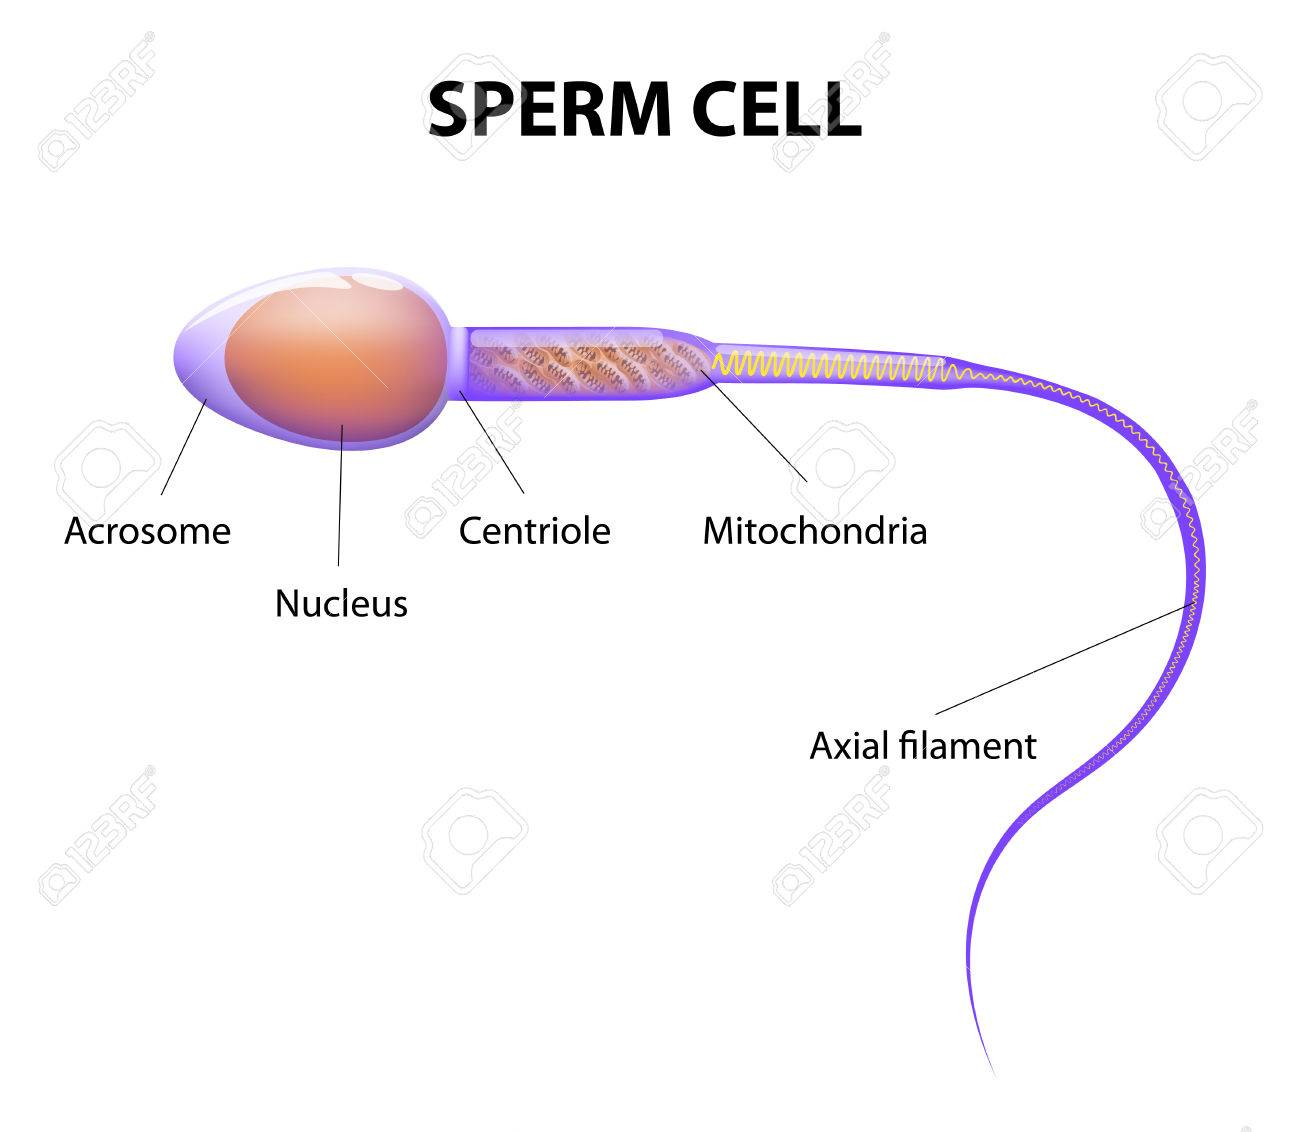 Sperm cell parts